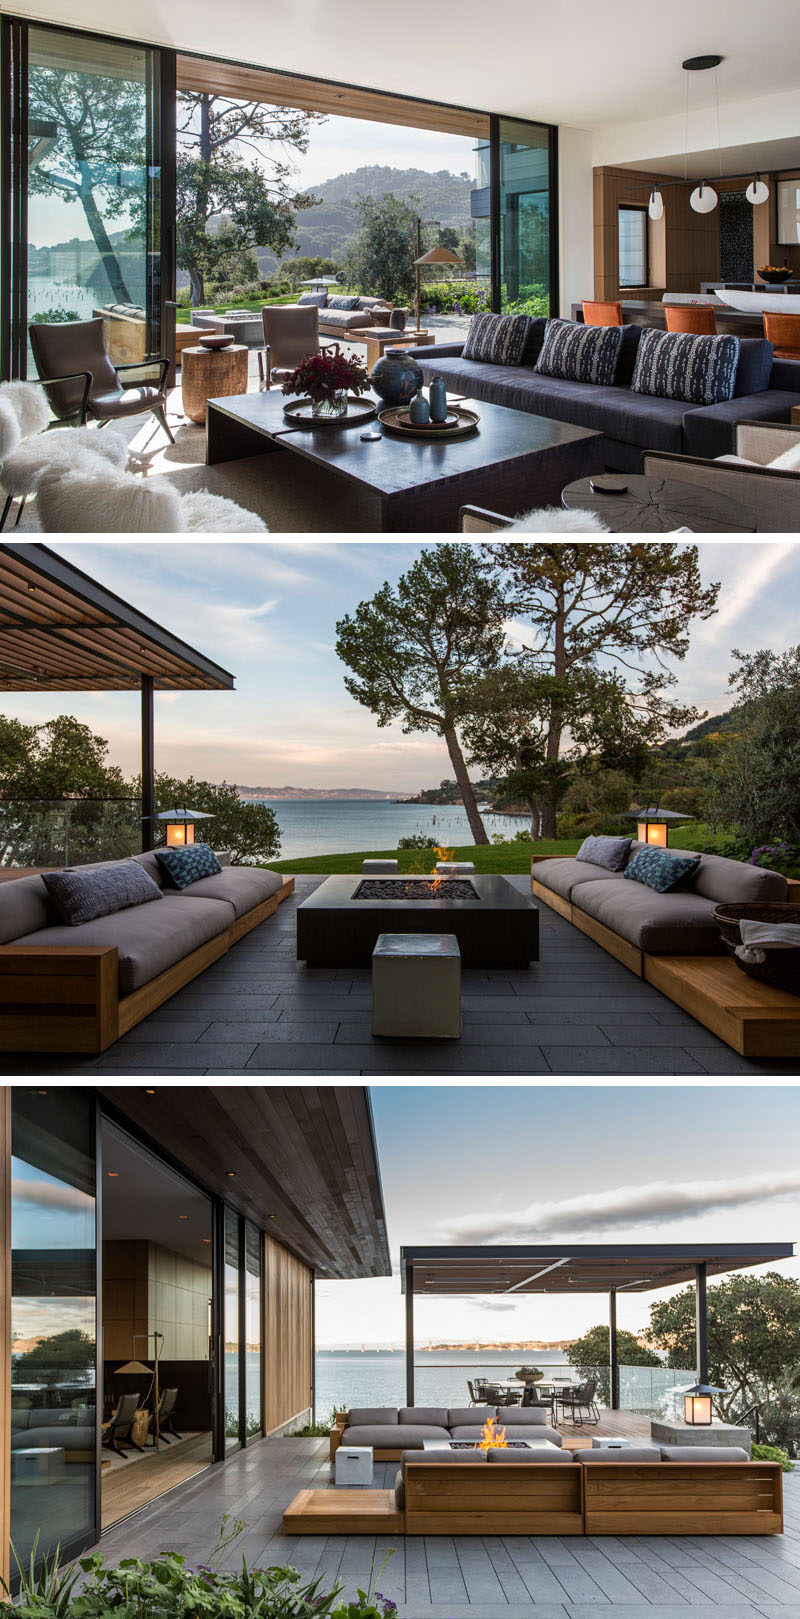 In the living room of this modern house, large sliding glass doors open to an outdoor lounge to create an indoor / outdoor living experience. The outdoor lounge also has a firepit and a outdoor dining area sits underneath a pergola.